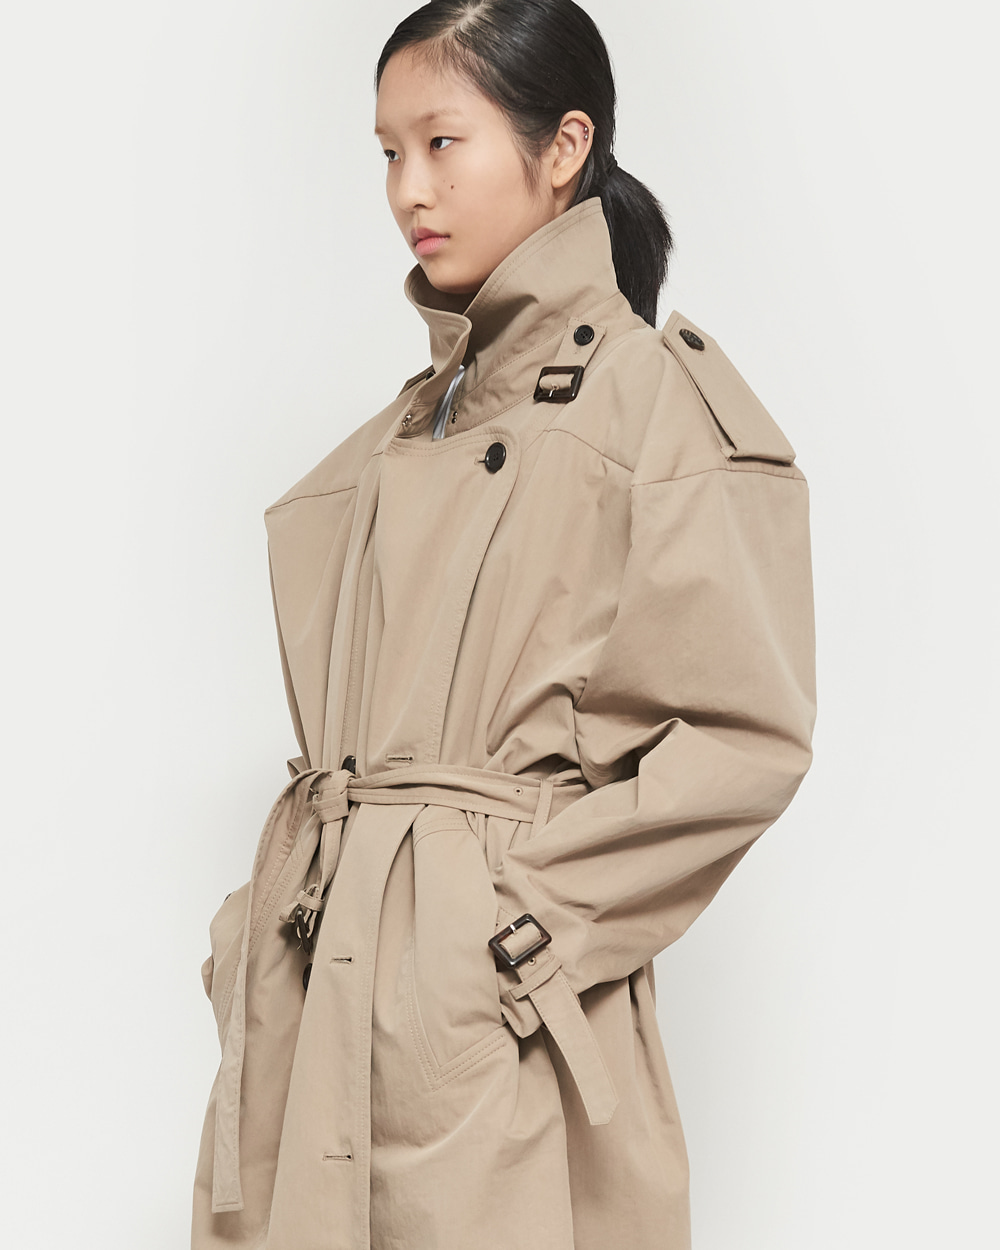 BOX SHOULDER TRENCH COAT